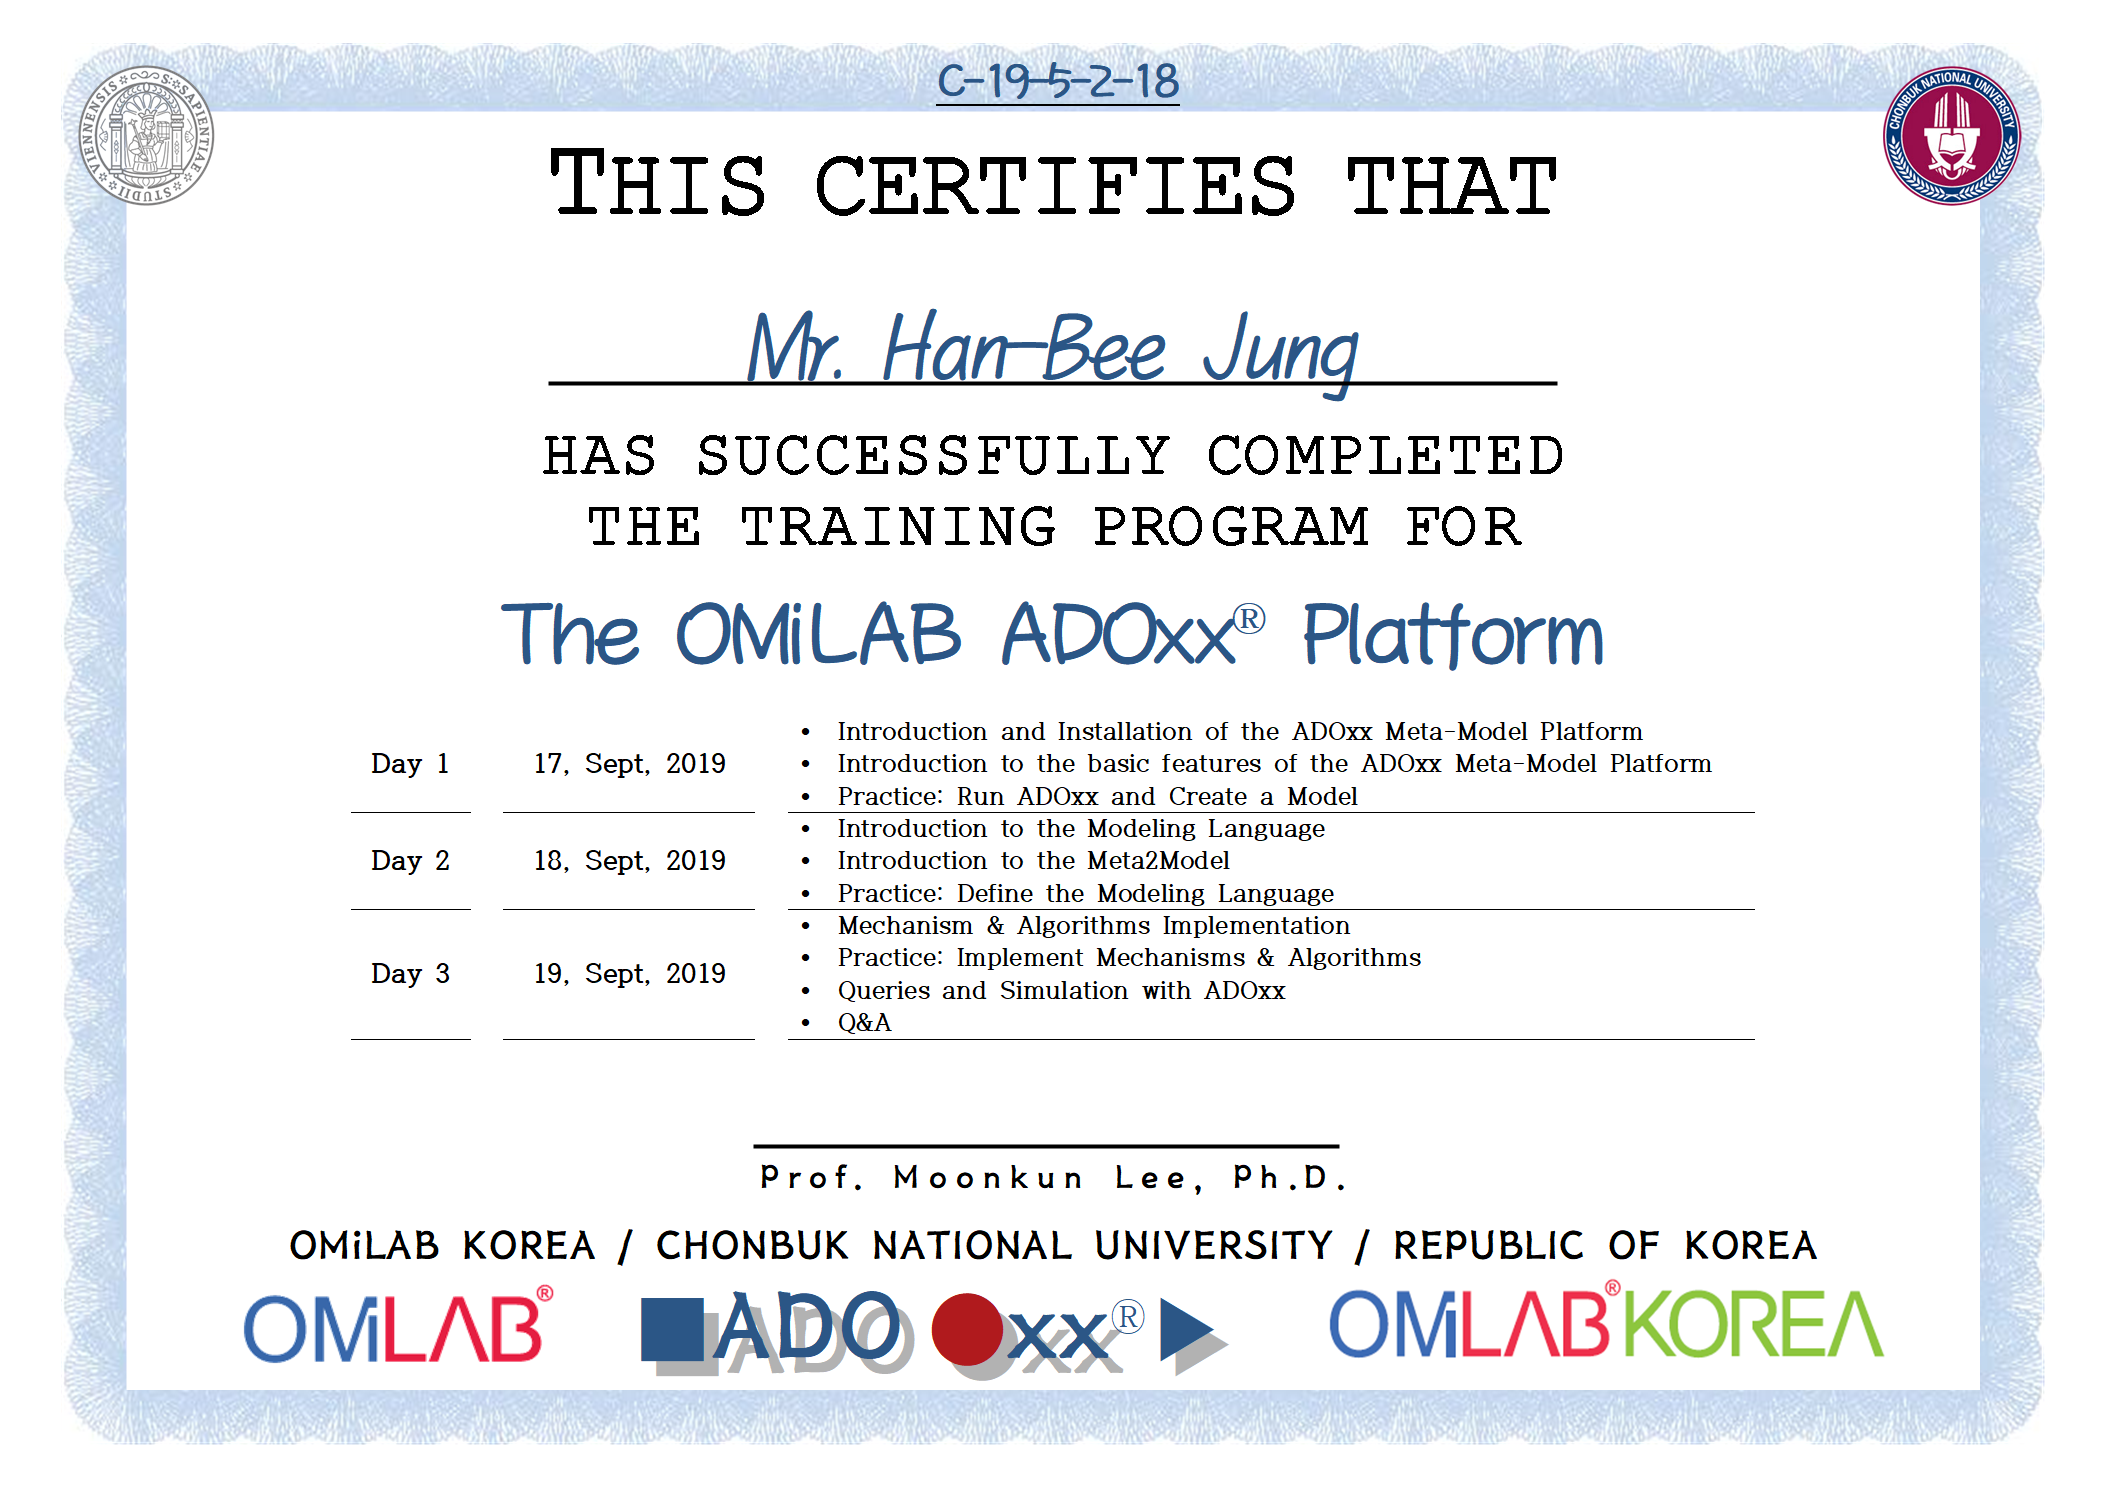 18. [CBNU-U] Mr. Han-Bee Jung - 정한비 - 2019 제 5차 ADOxx Training 수료증-f.png